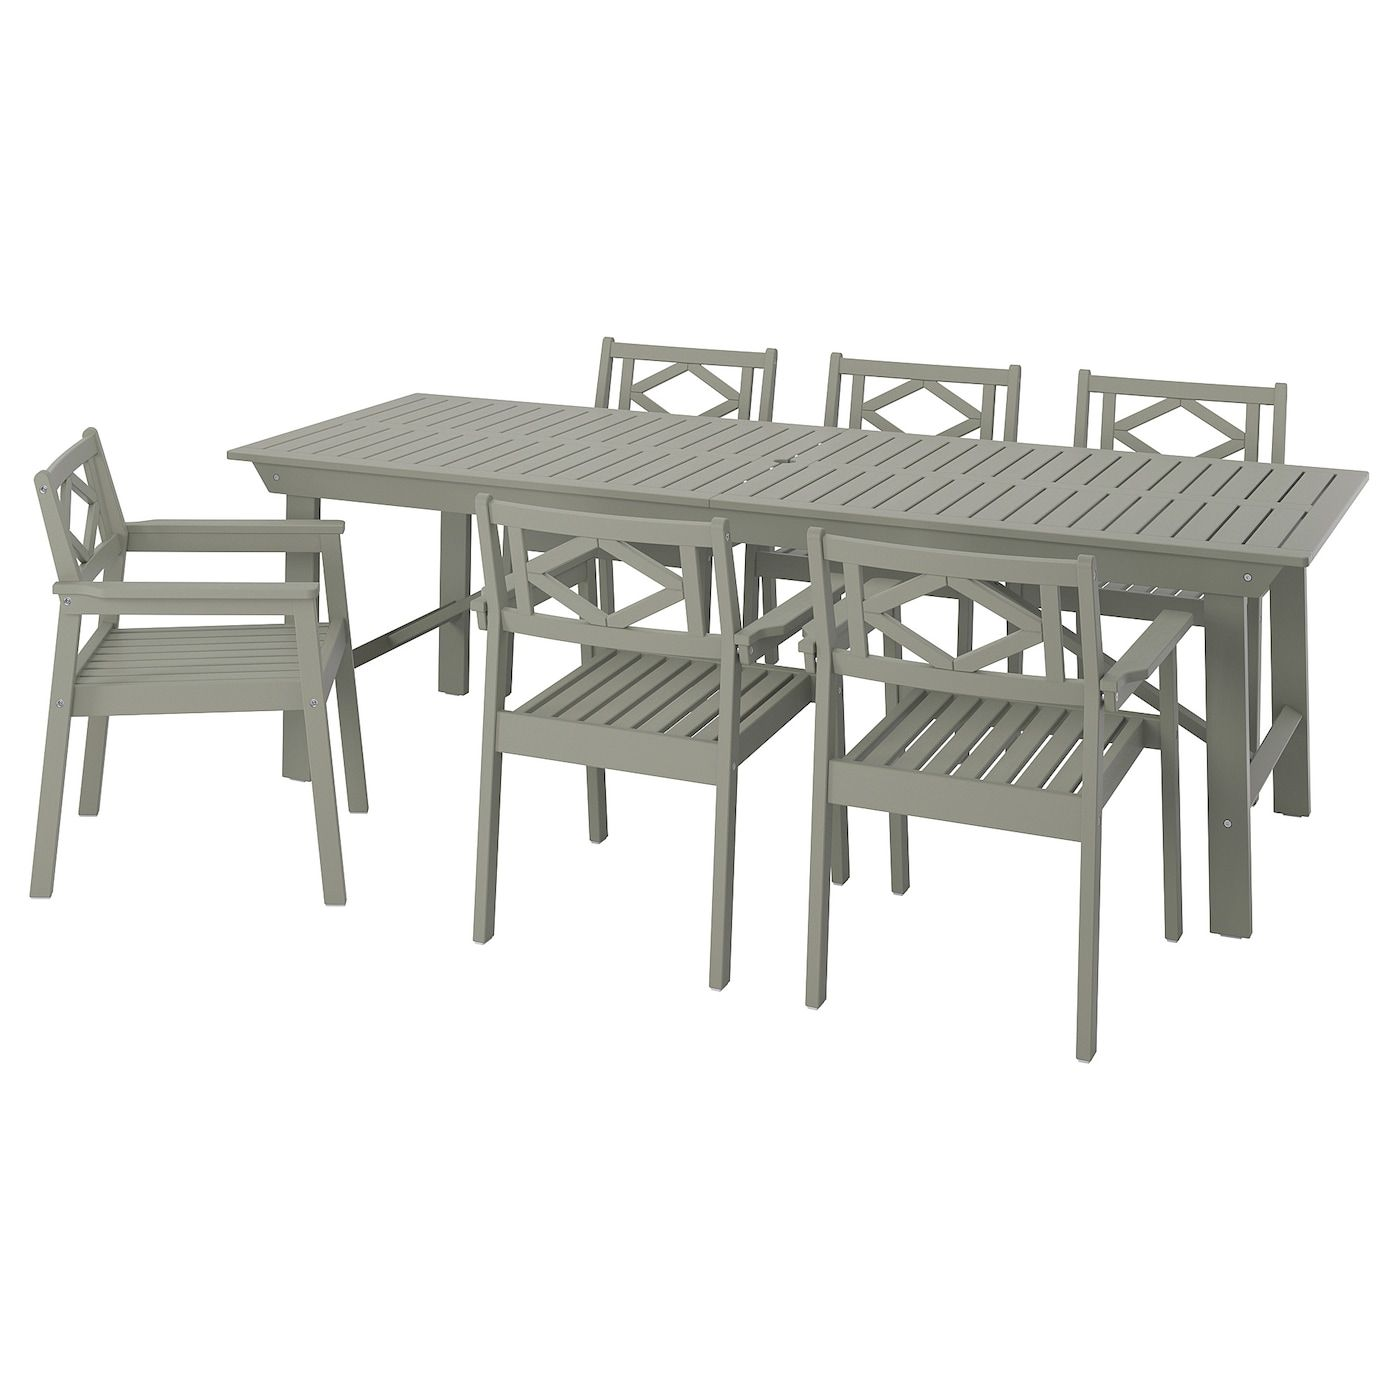 Bondholmen Table 6 Chairs Outdoor Gray Stained Ikea In 2020 Outdoor Dining Furniture Dining Furniture Outdoor Chairs